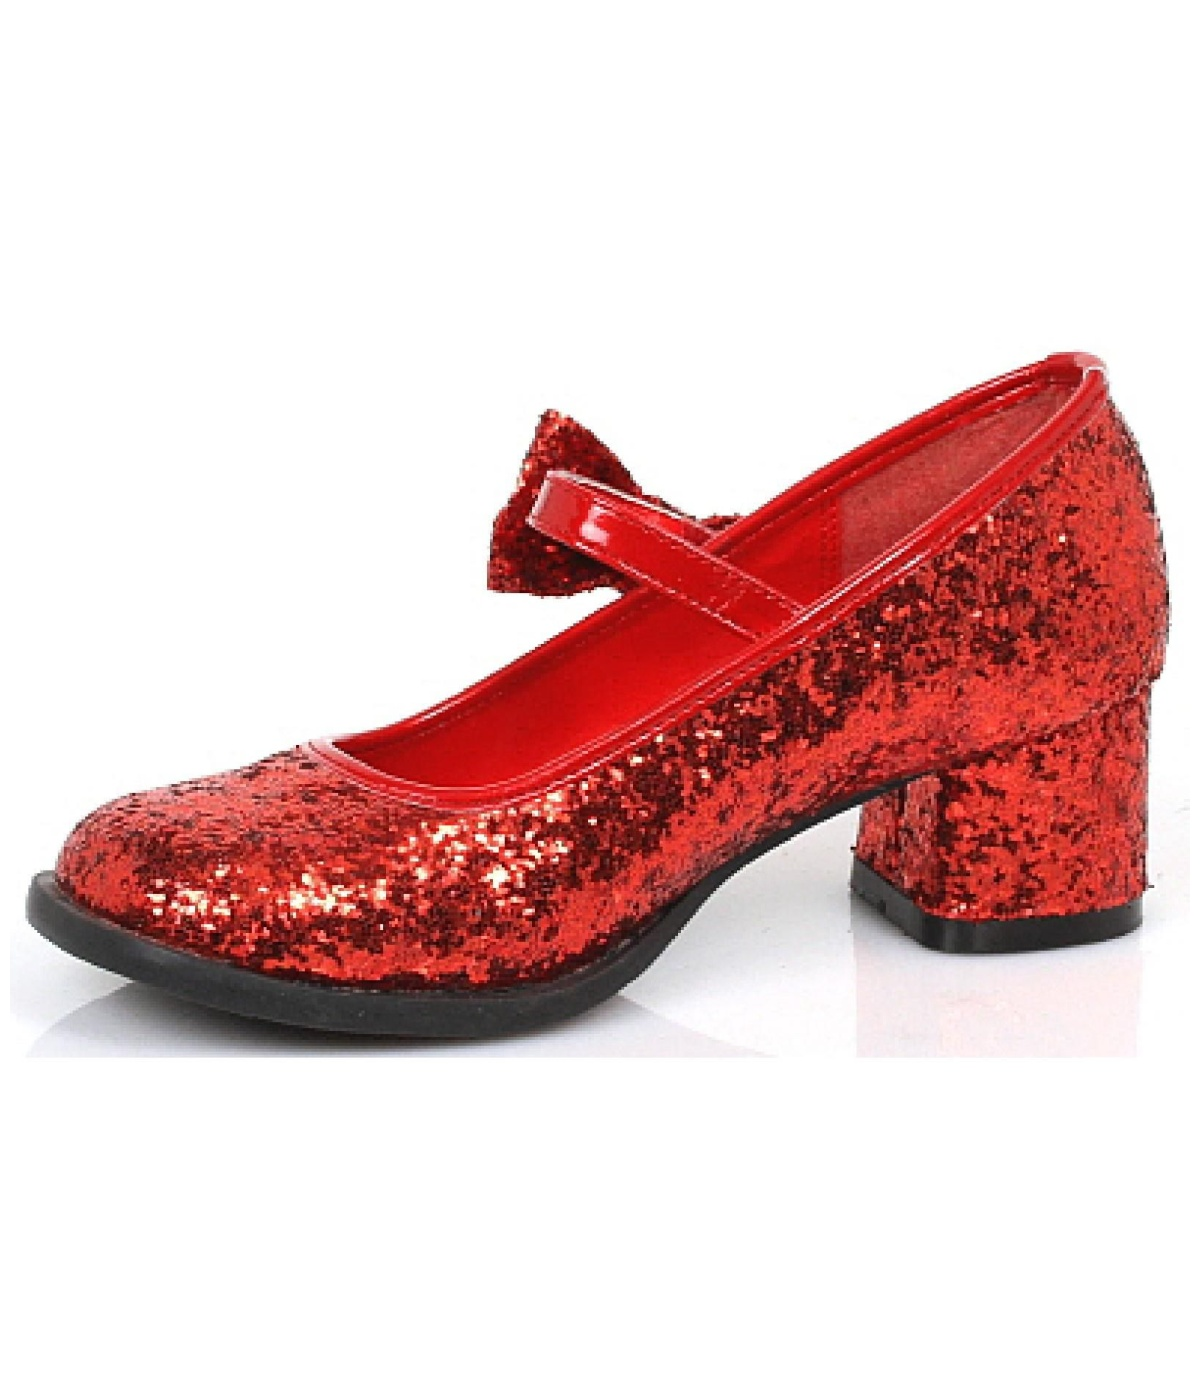 Free shipping BOTH ways on red sparkle shoes girls, from our vast selection of styles. Fast delivery, and 24/7/ real-person service with a smile. Click or call